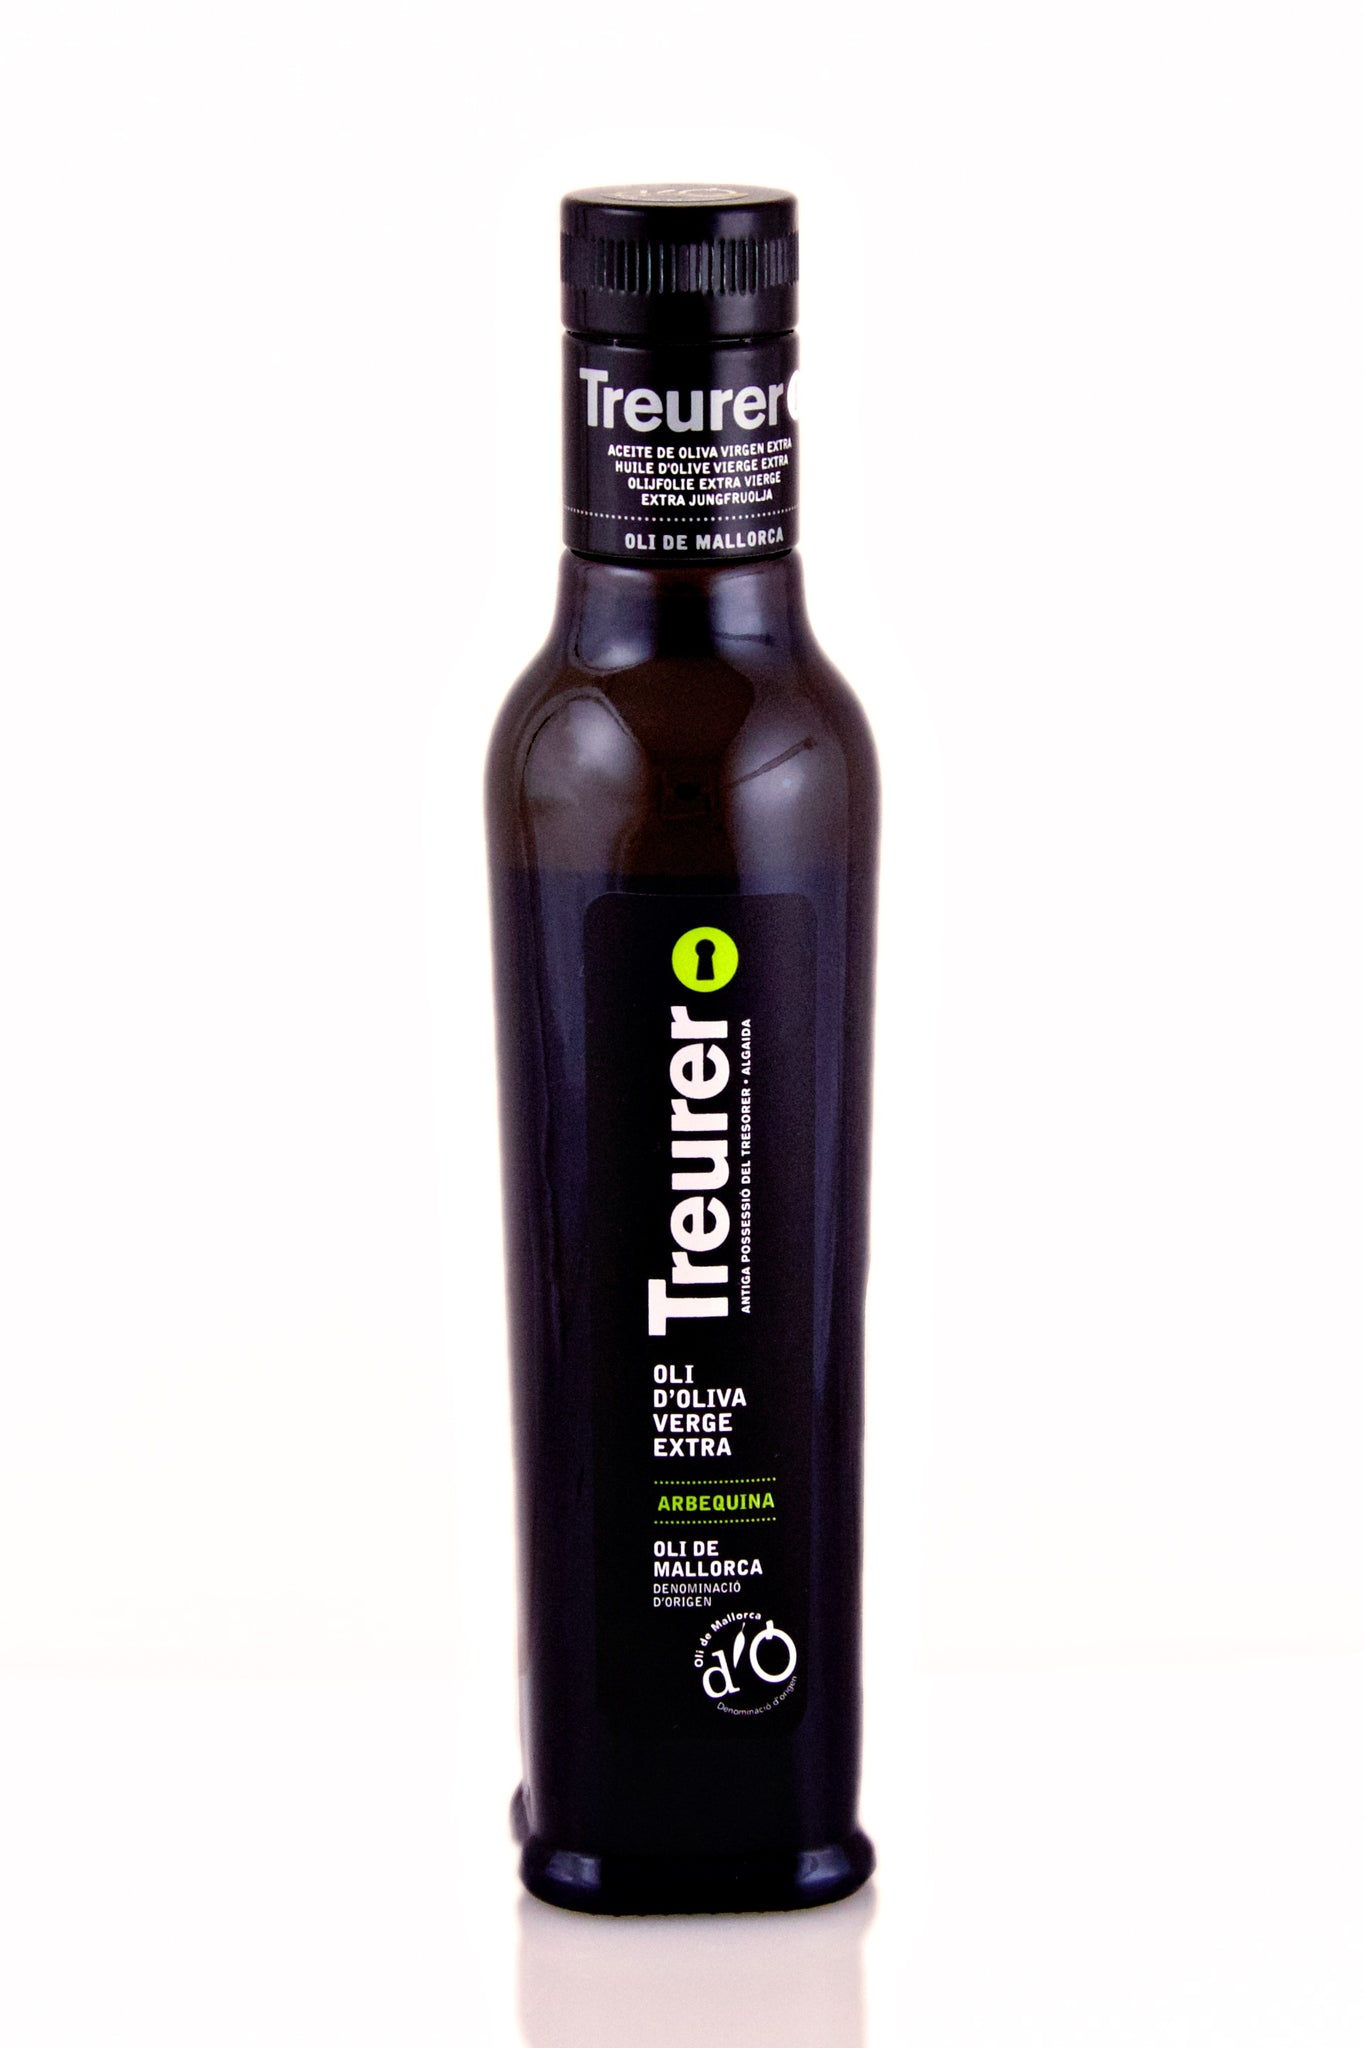 Treurer Extra Virgin Olive Oil from Mallorca 250ml